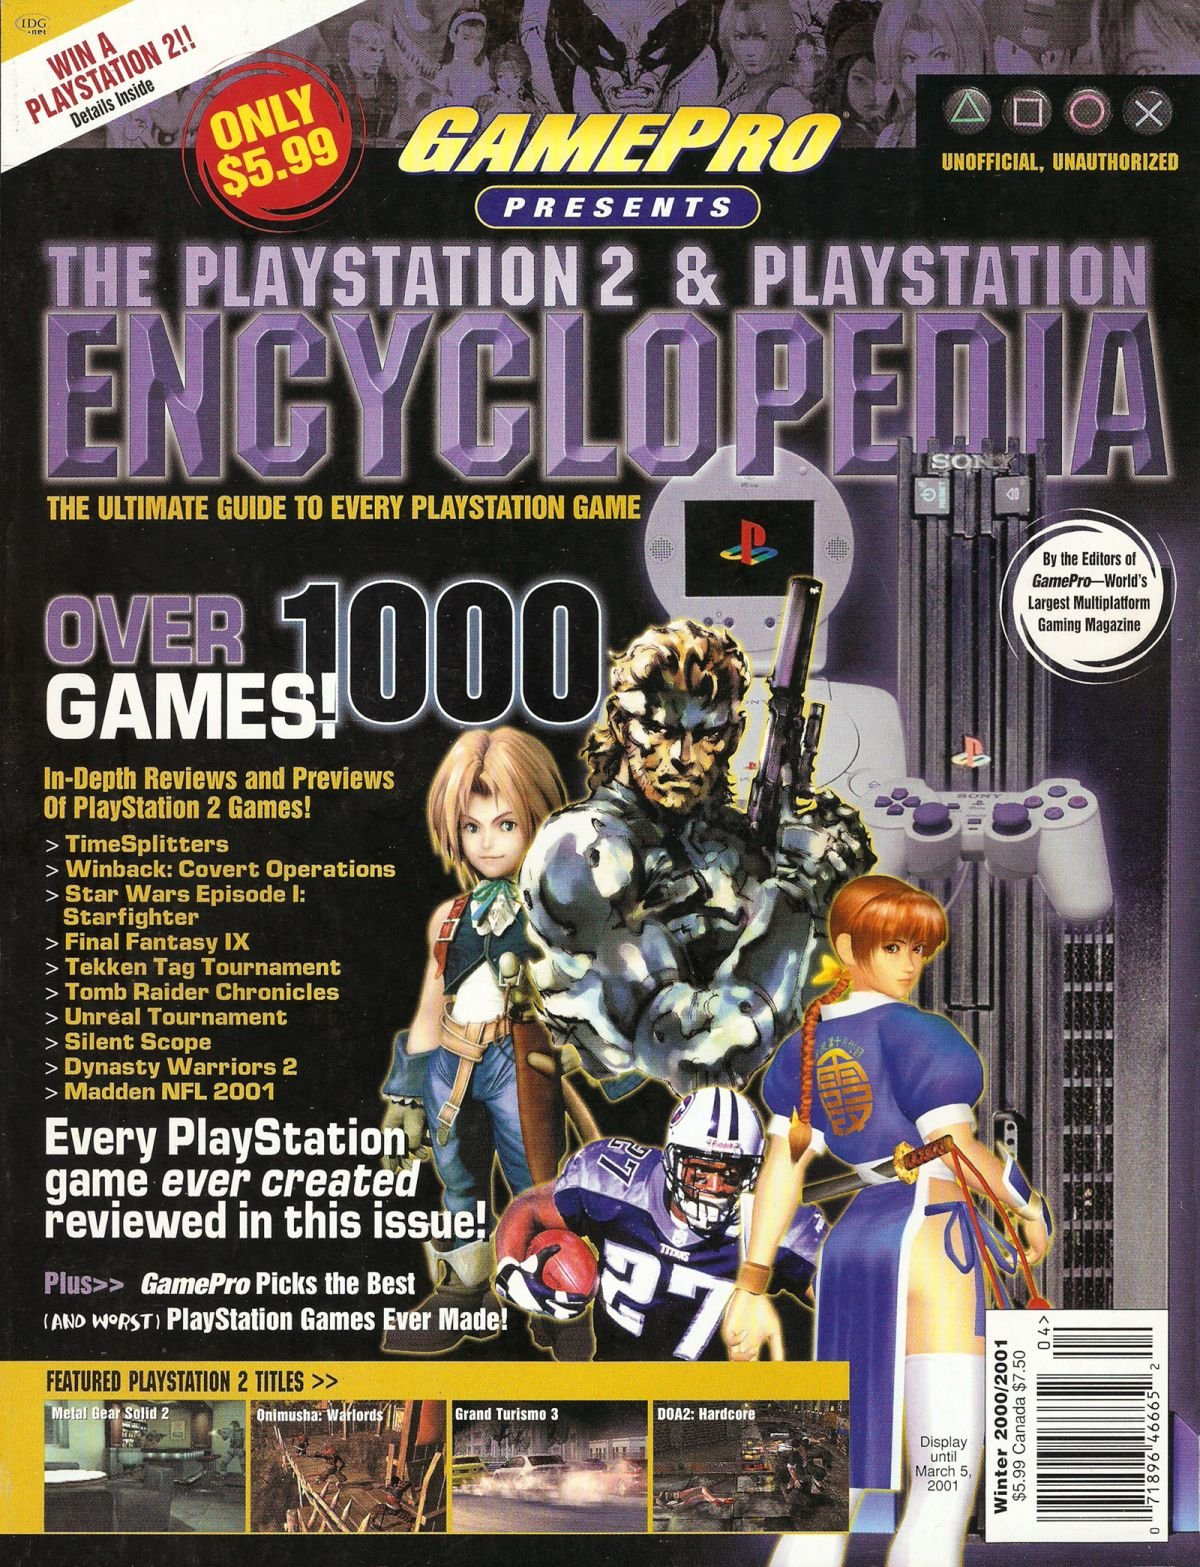 GamePro Presents The PlayStation 2 & PlayStation Encyclopedia (Winter 2000/2001)